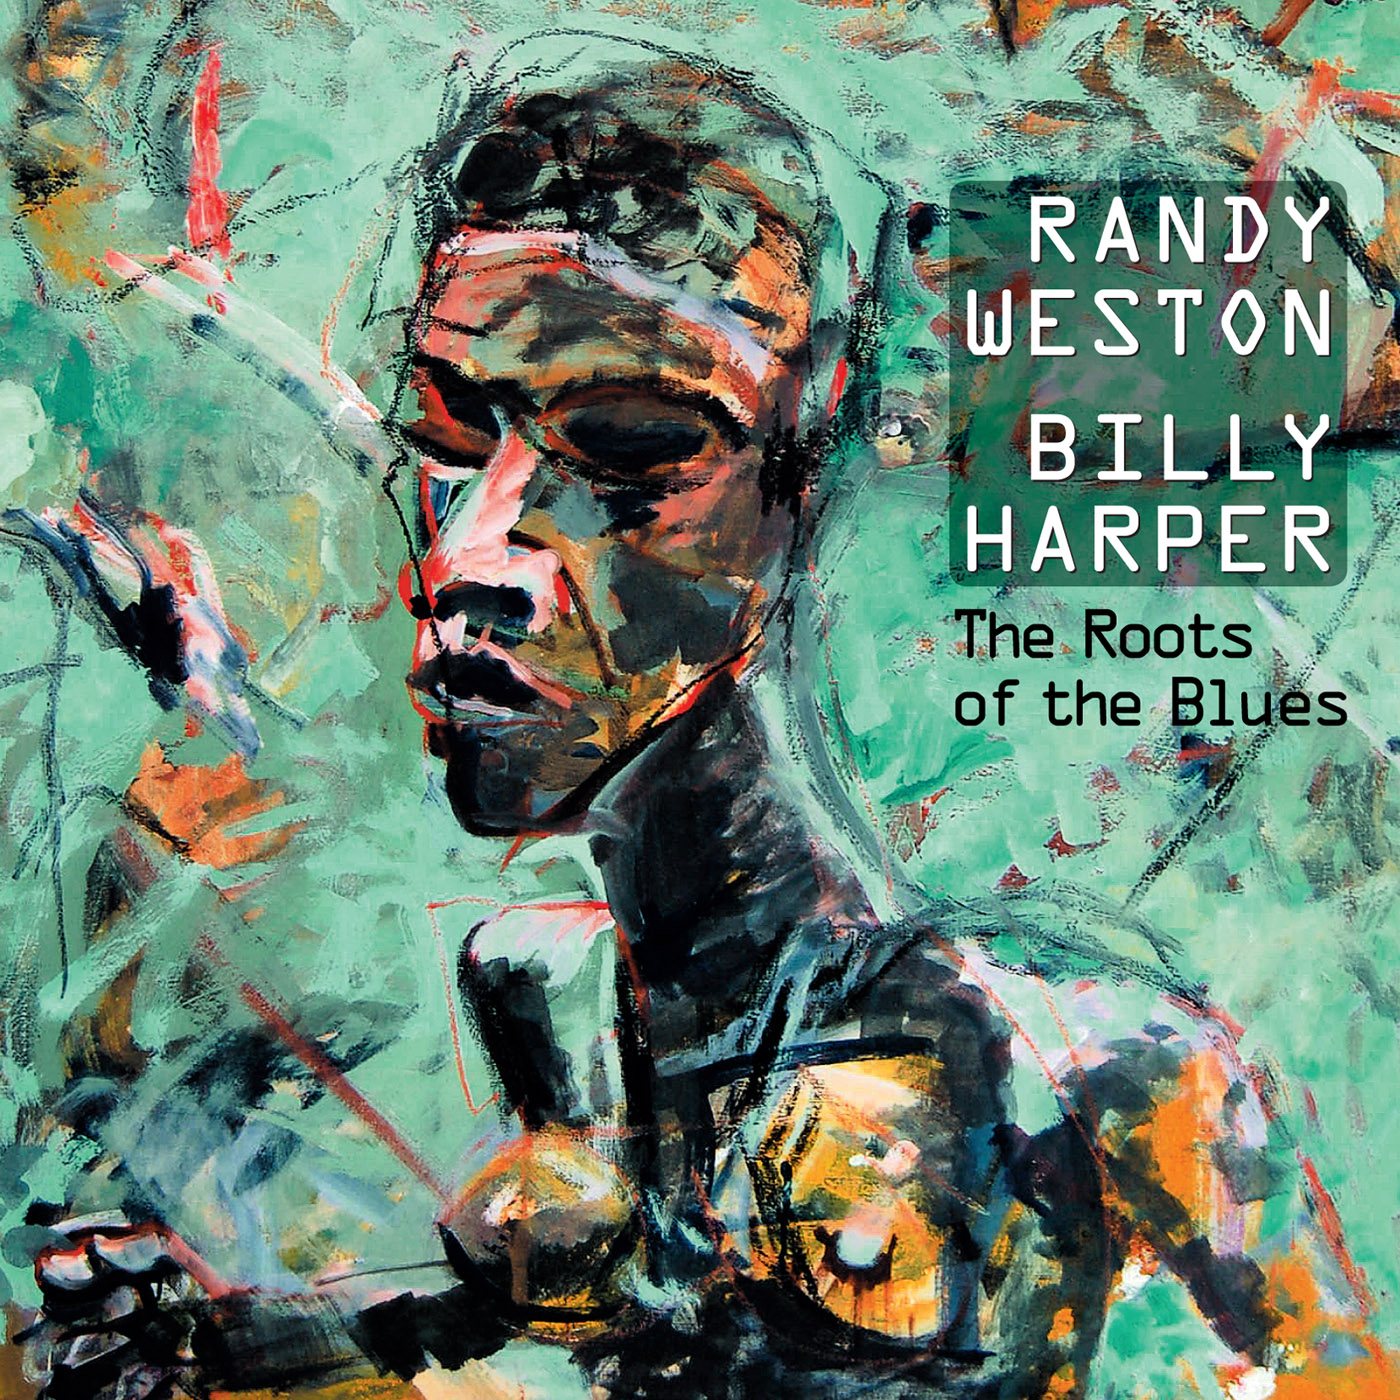 The Roots of the Blues  by Randy  Weston cover